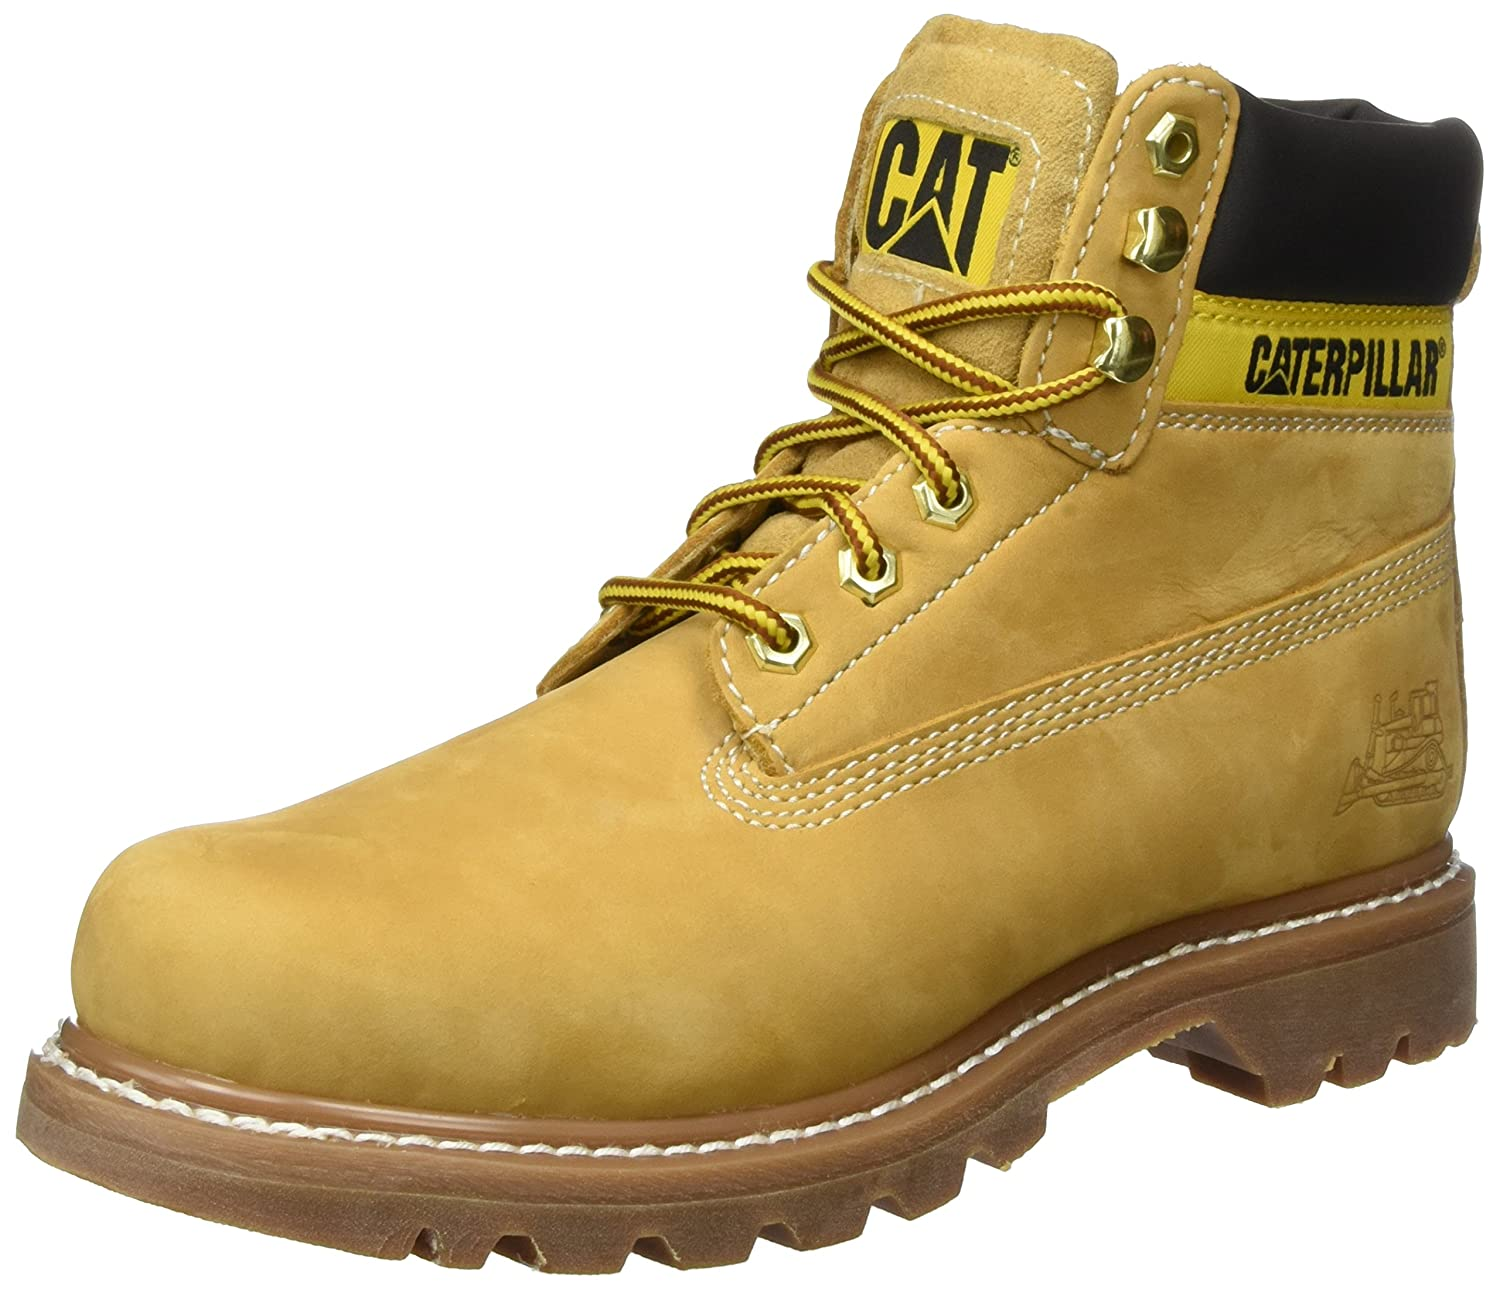 Caterpillar Colorado, Caterpillar Bottes Homme Beige Colorado, Bottes (Honey) c84fb85 - latesttechnology.space